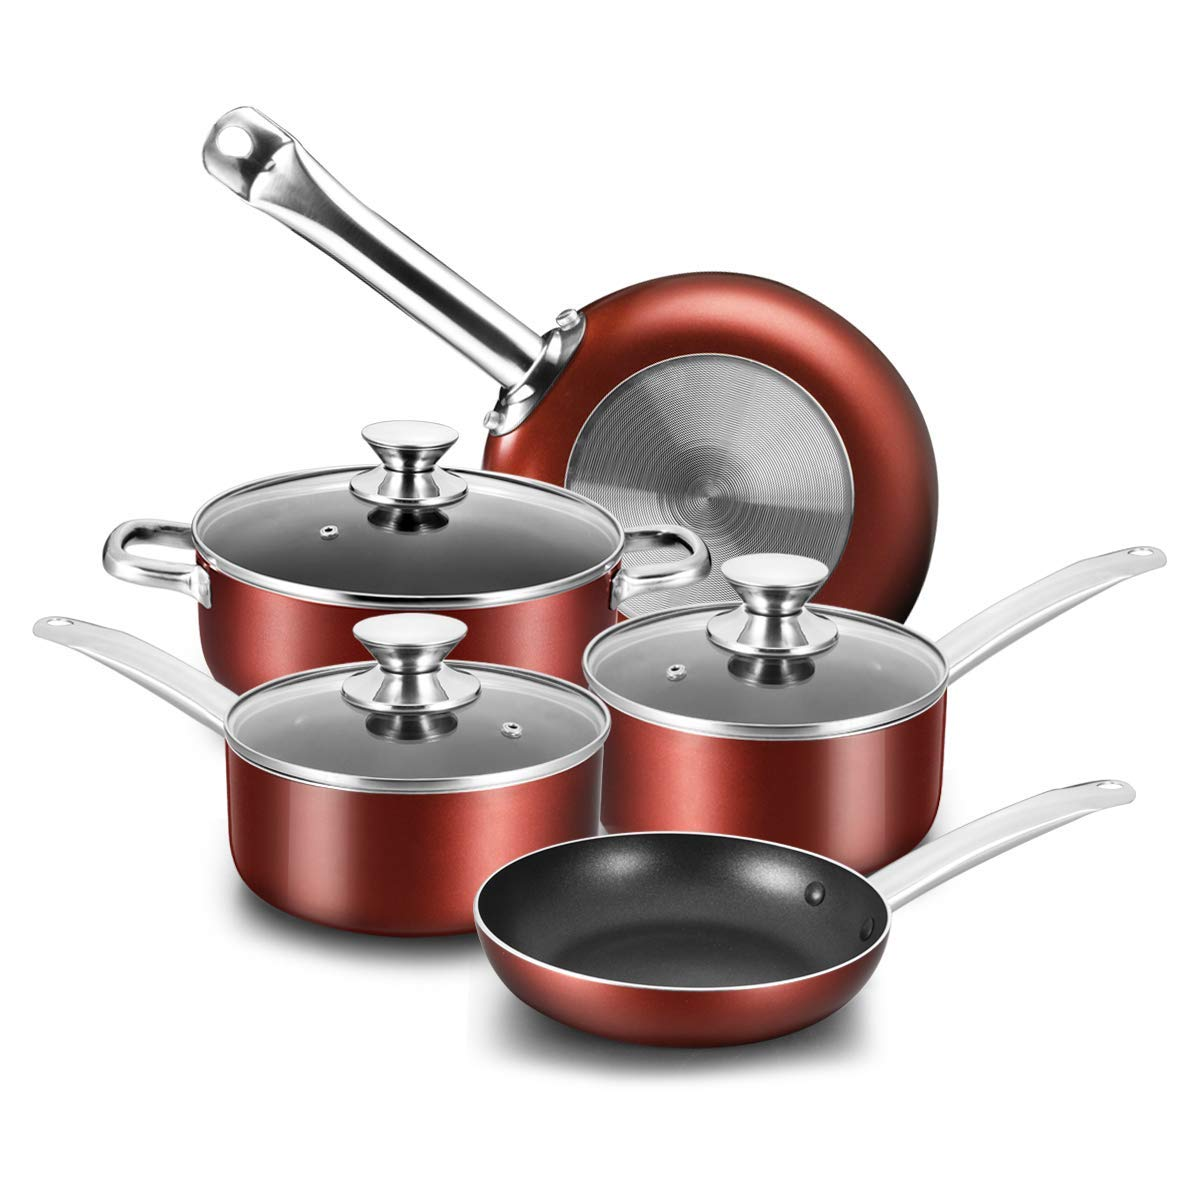 COOKER KING Nonstick Pots and Pans Set, 8 Piece Nonstick Cookware Set Saucepans and Dutch oven with Glass Lids, Oven Safe, Dishwasher Safe, Glitter Dark Red (Renewed)